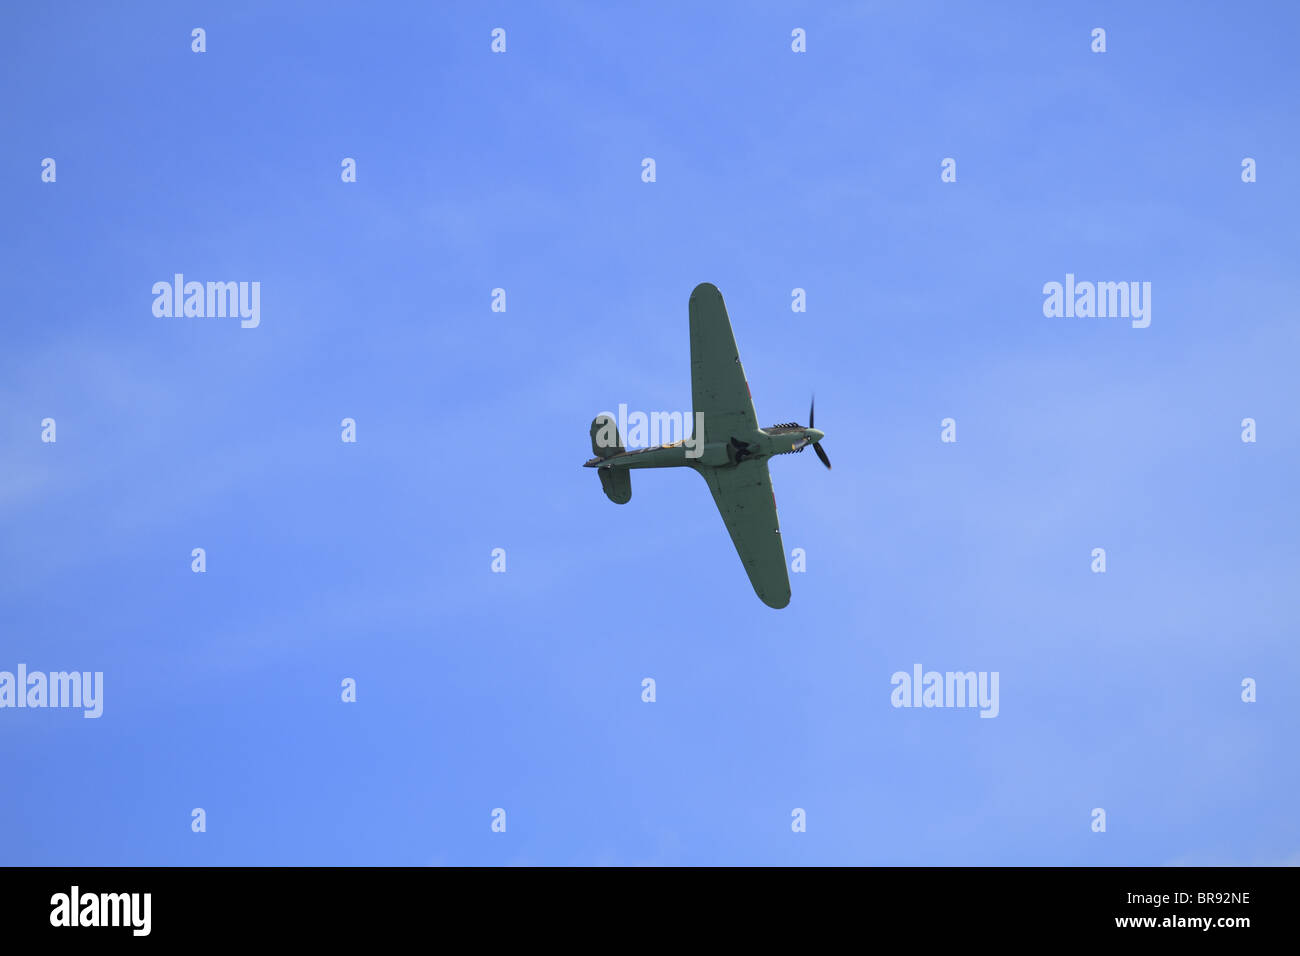 A Hawker Hurricane LF363 (Mk IIc), part of the Battle of Britain Memorial Flight, at Eastbourne Air Show, Sussex, - Stock Image